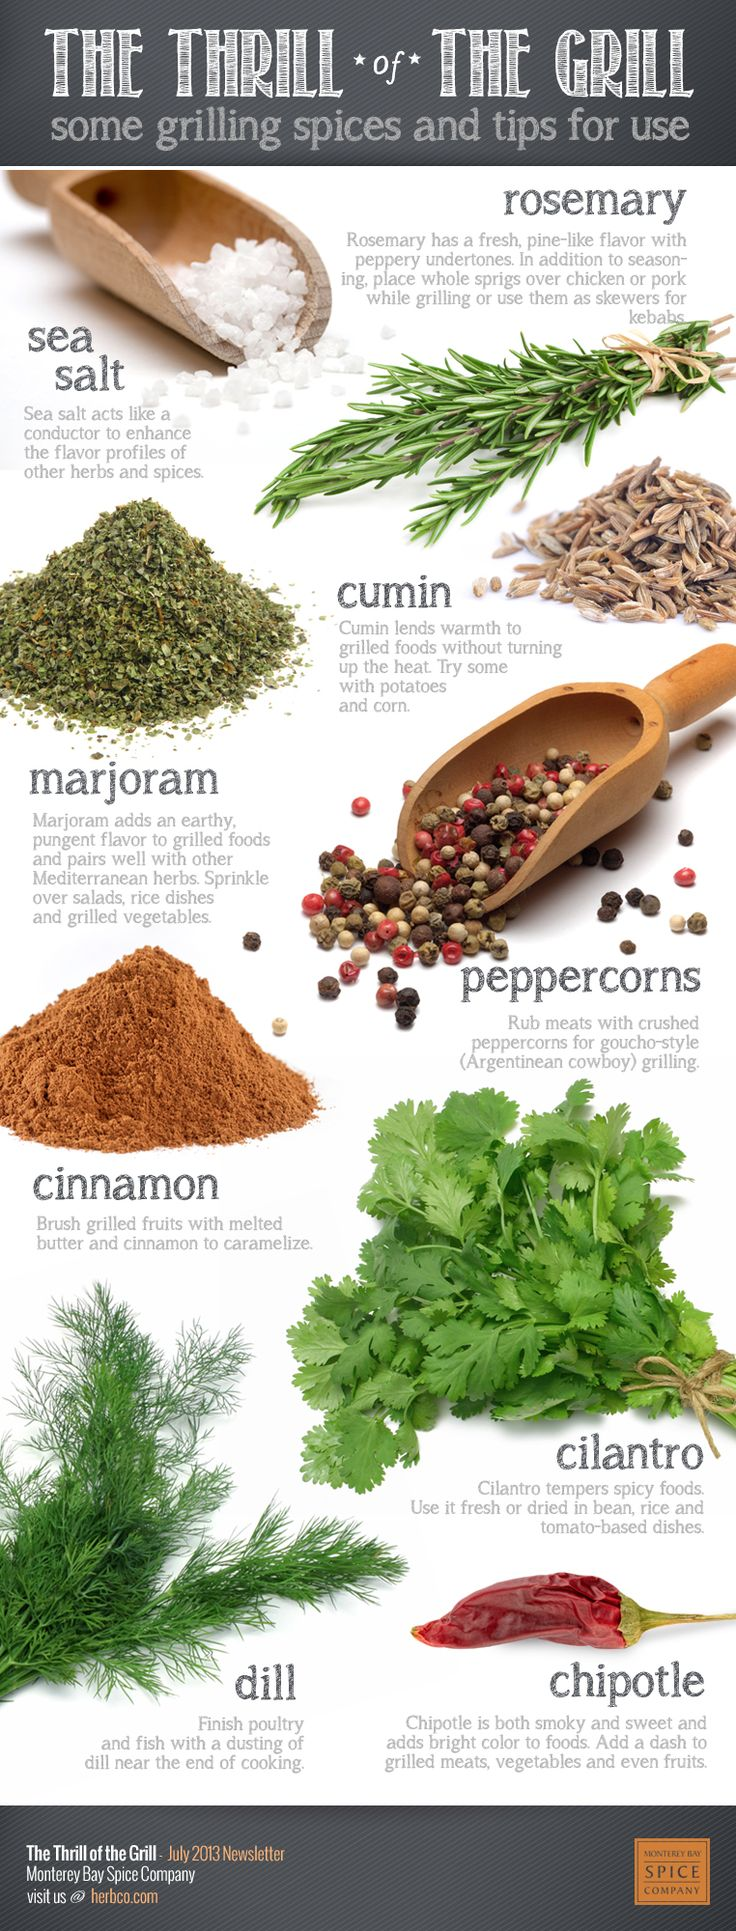 [ Info: Spices For #Grilling ] Includes notes on: rosemary, cumin, marjoram, peppercorns, cinnamon, sea salt, cilantro, chipotle, and dill. ~ from Monterey Bay Spice Co